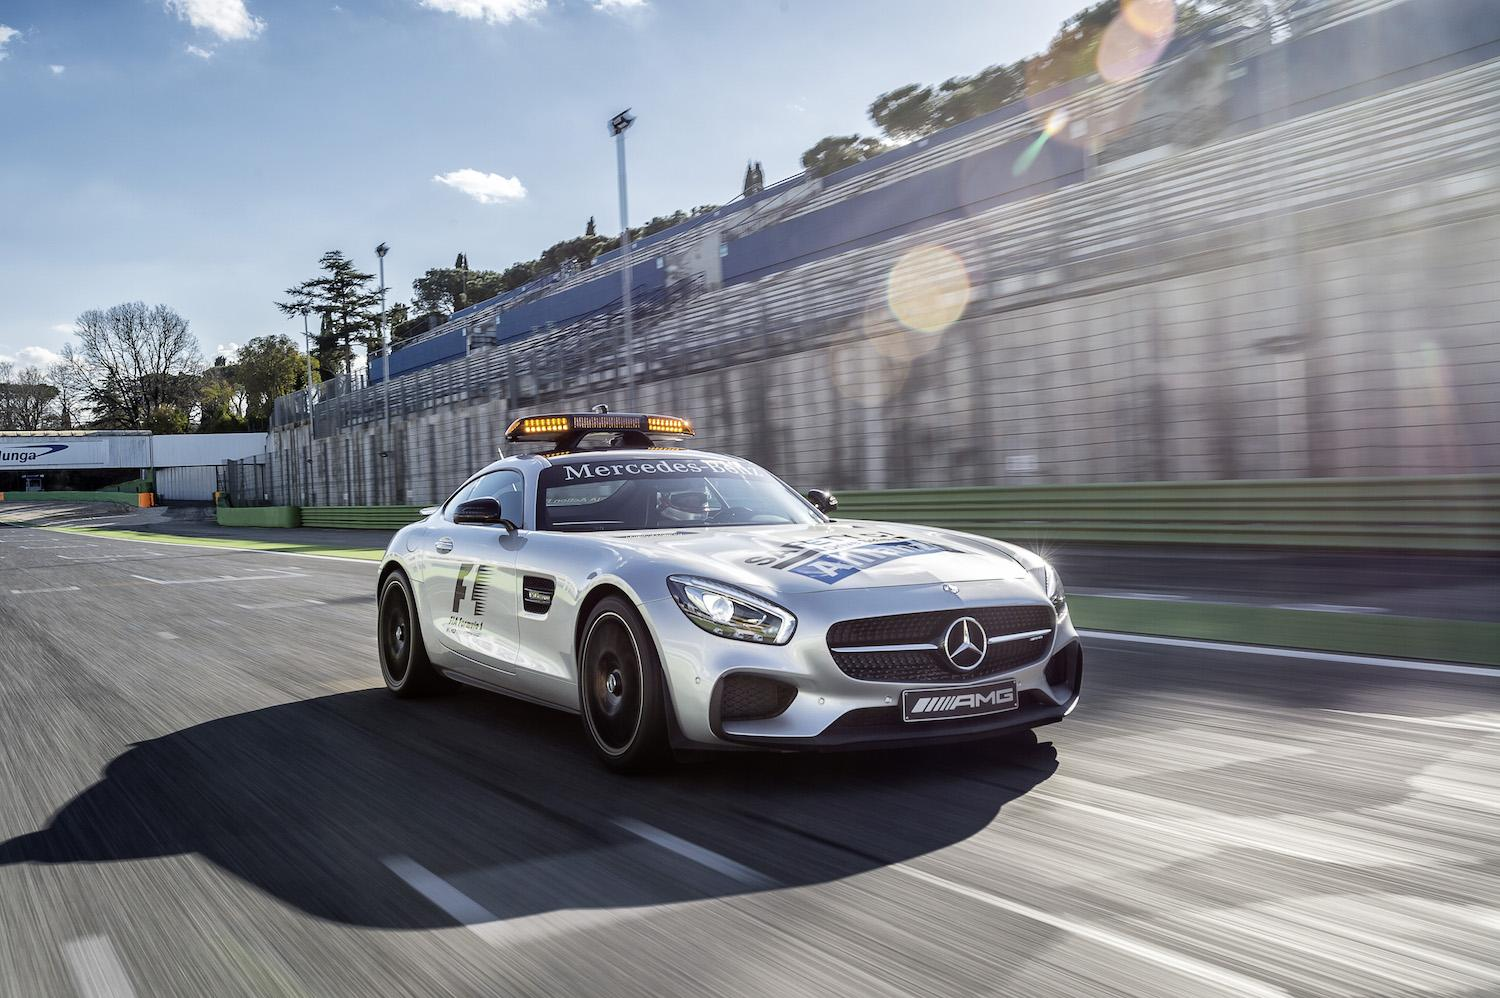 Mercedes amg gt s replaces the retiring sls amg as f1 s for Mercedes benz safety